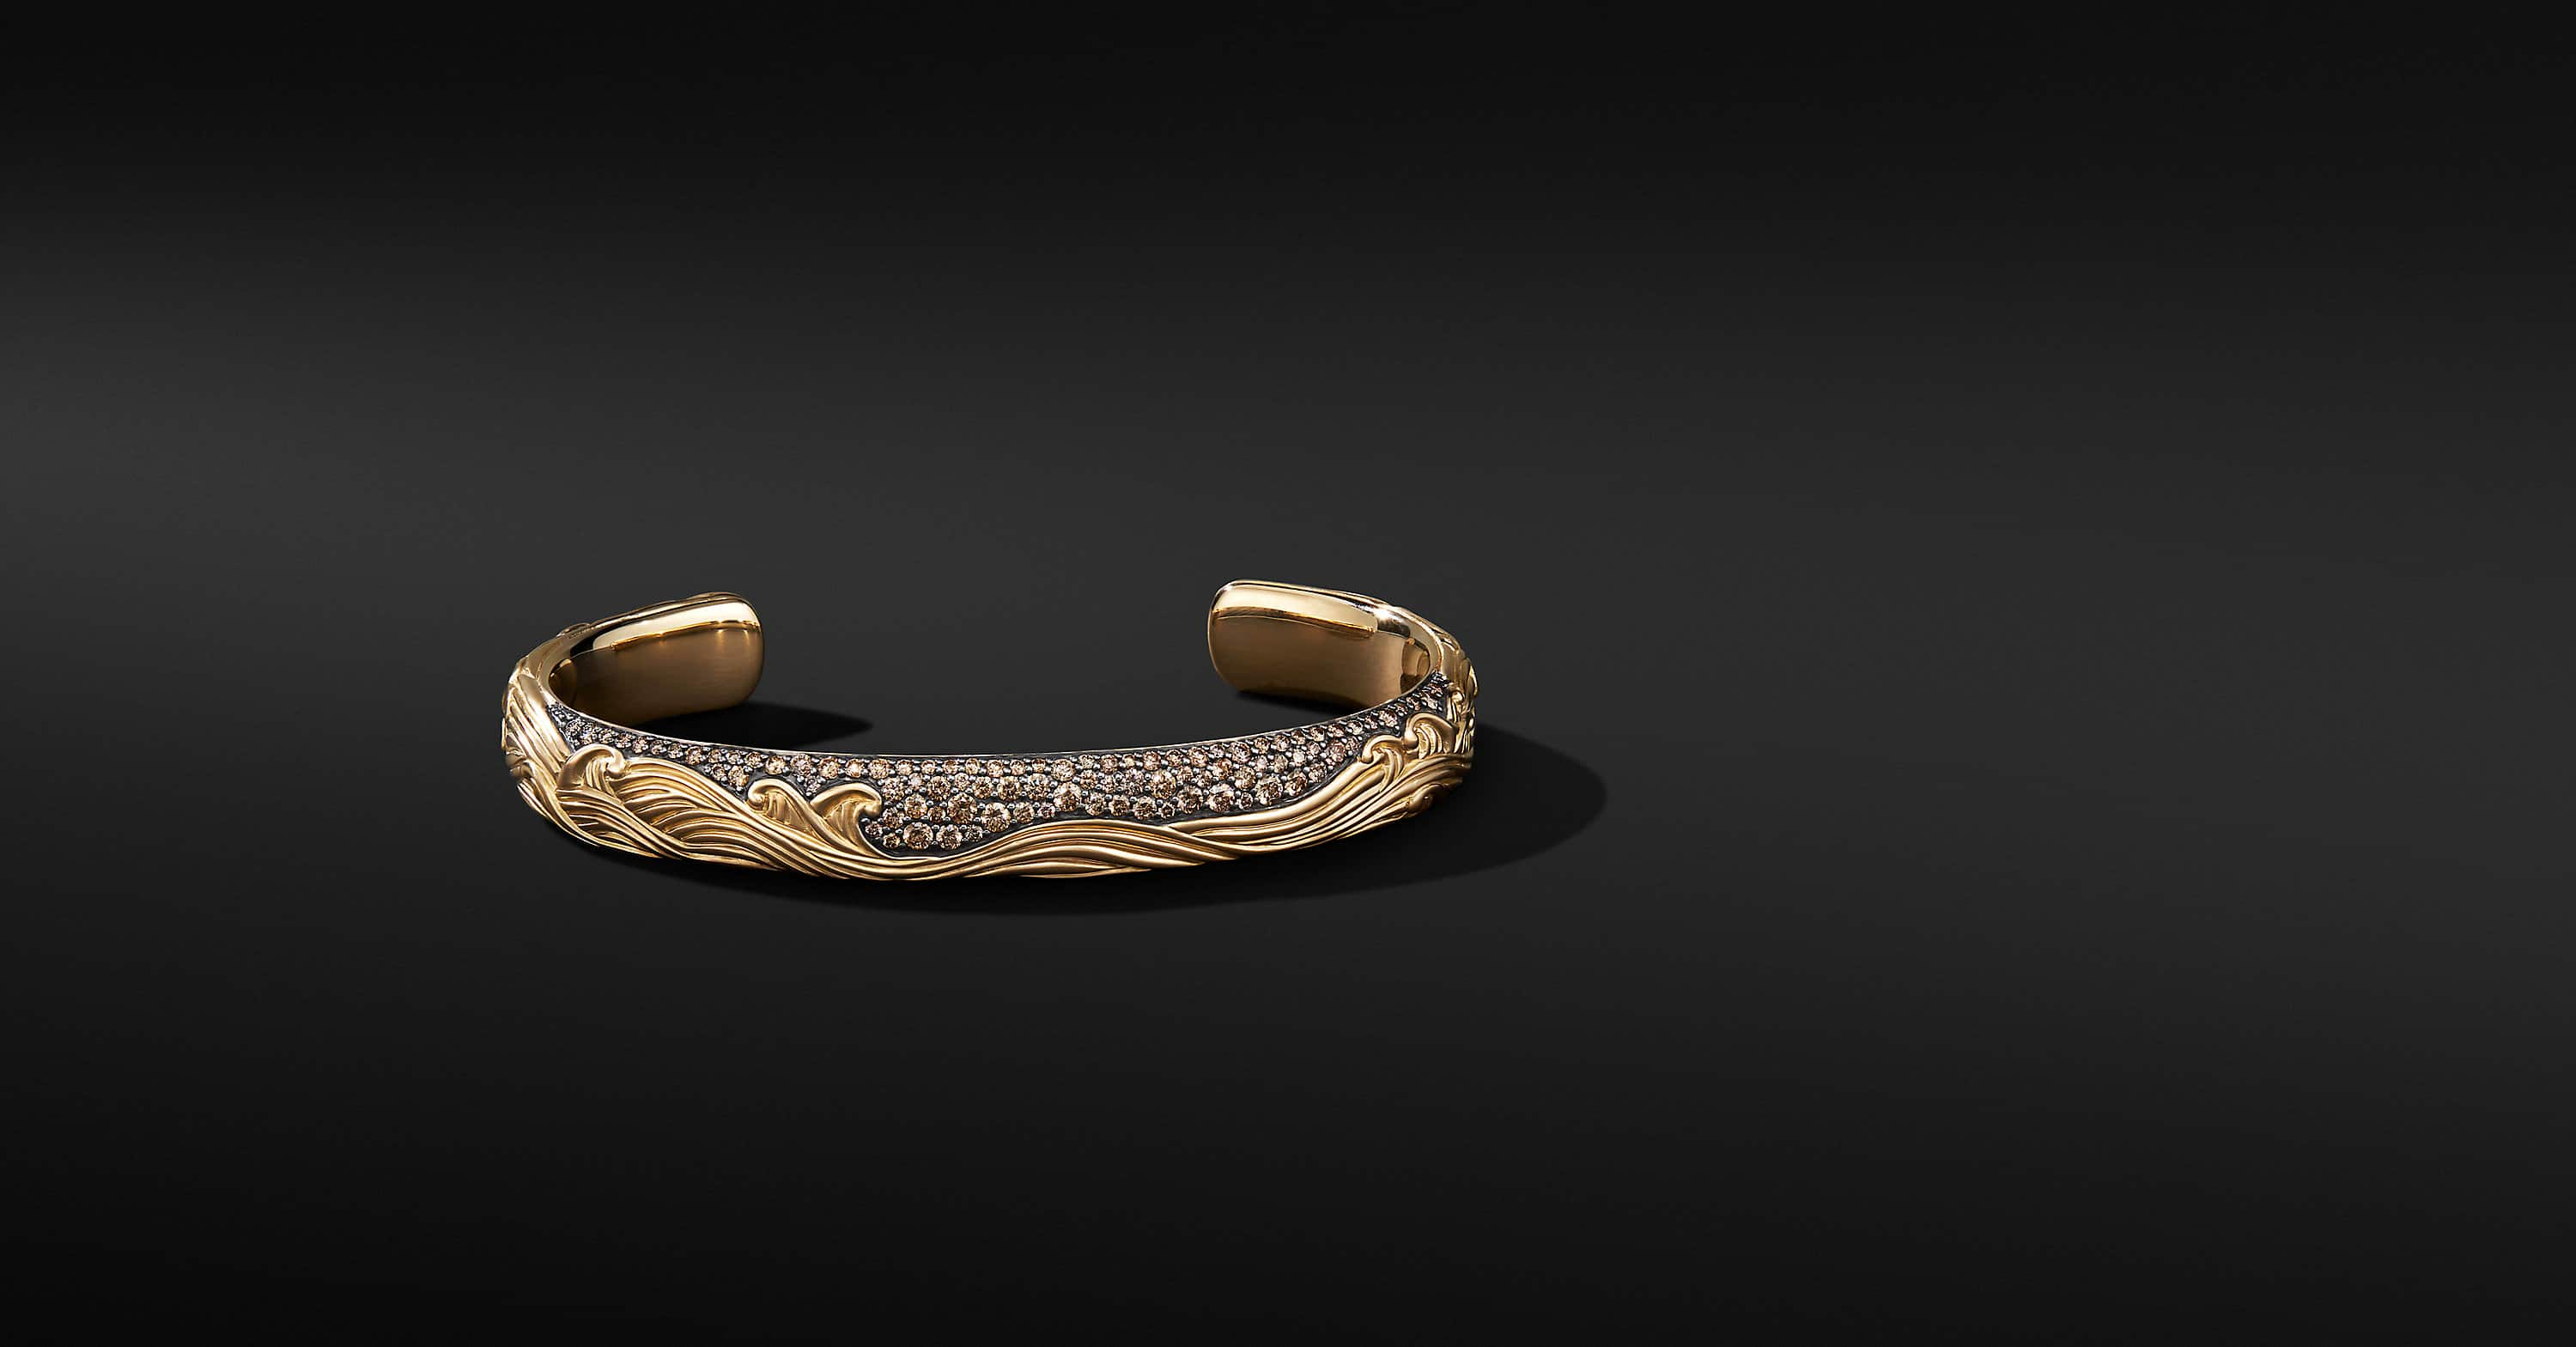 Waves Cuff Bracelet in 18K Yellow Gold, 9mm